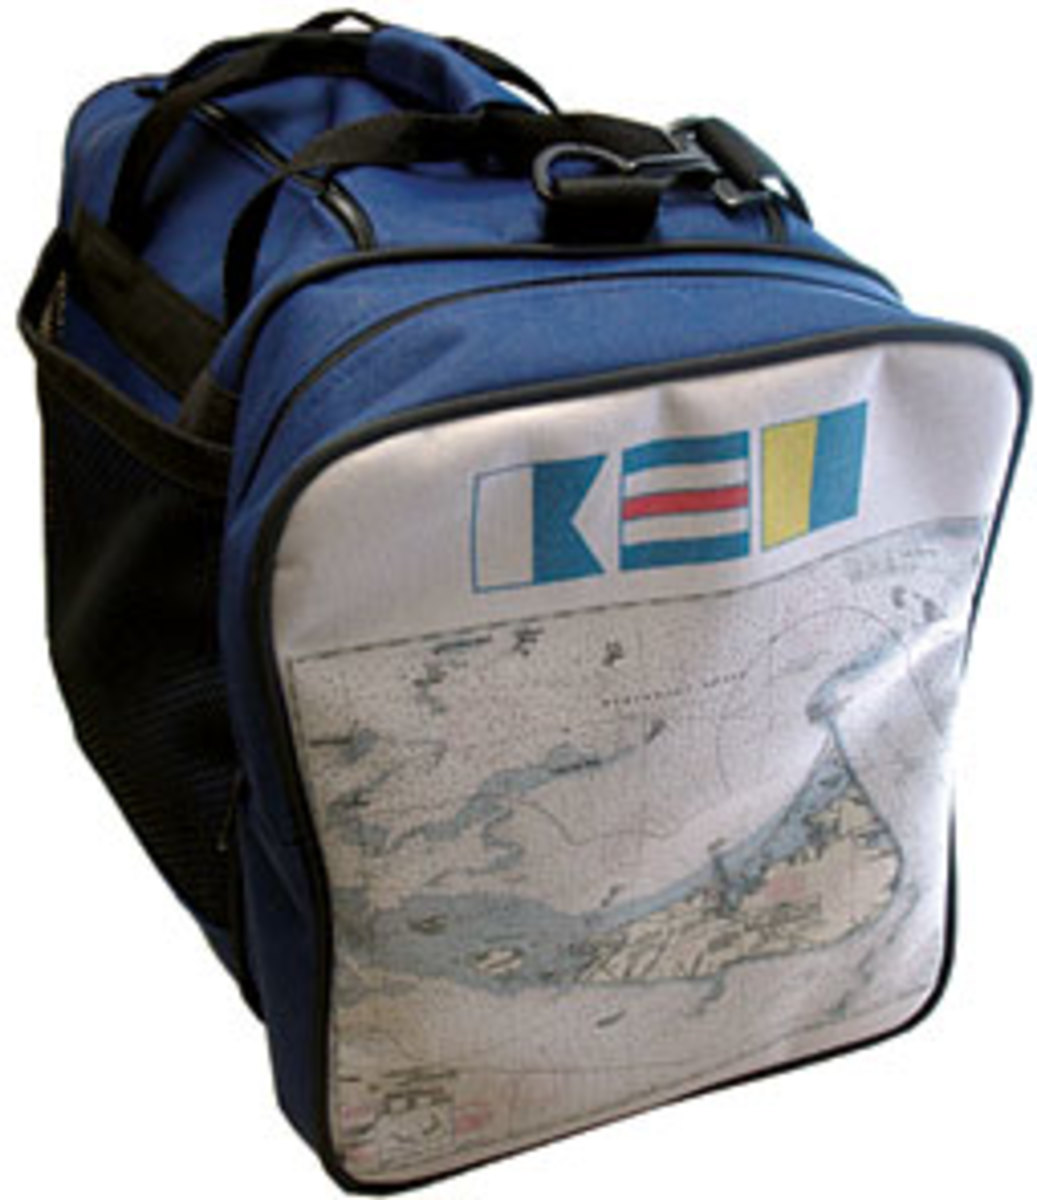 Anexample of oone of the customized bags fgrom Not for Navigation